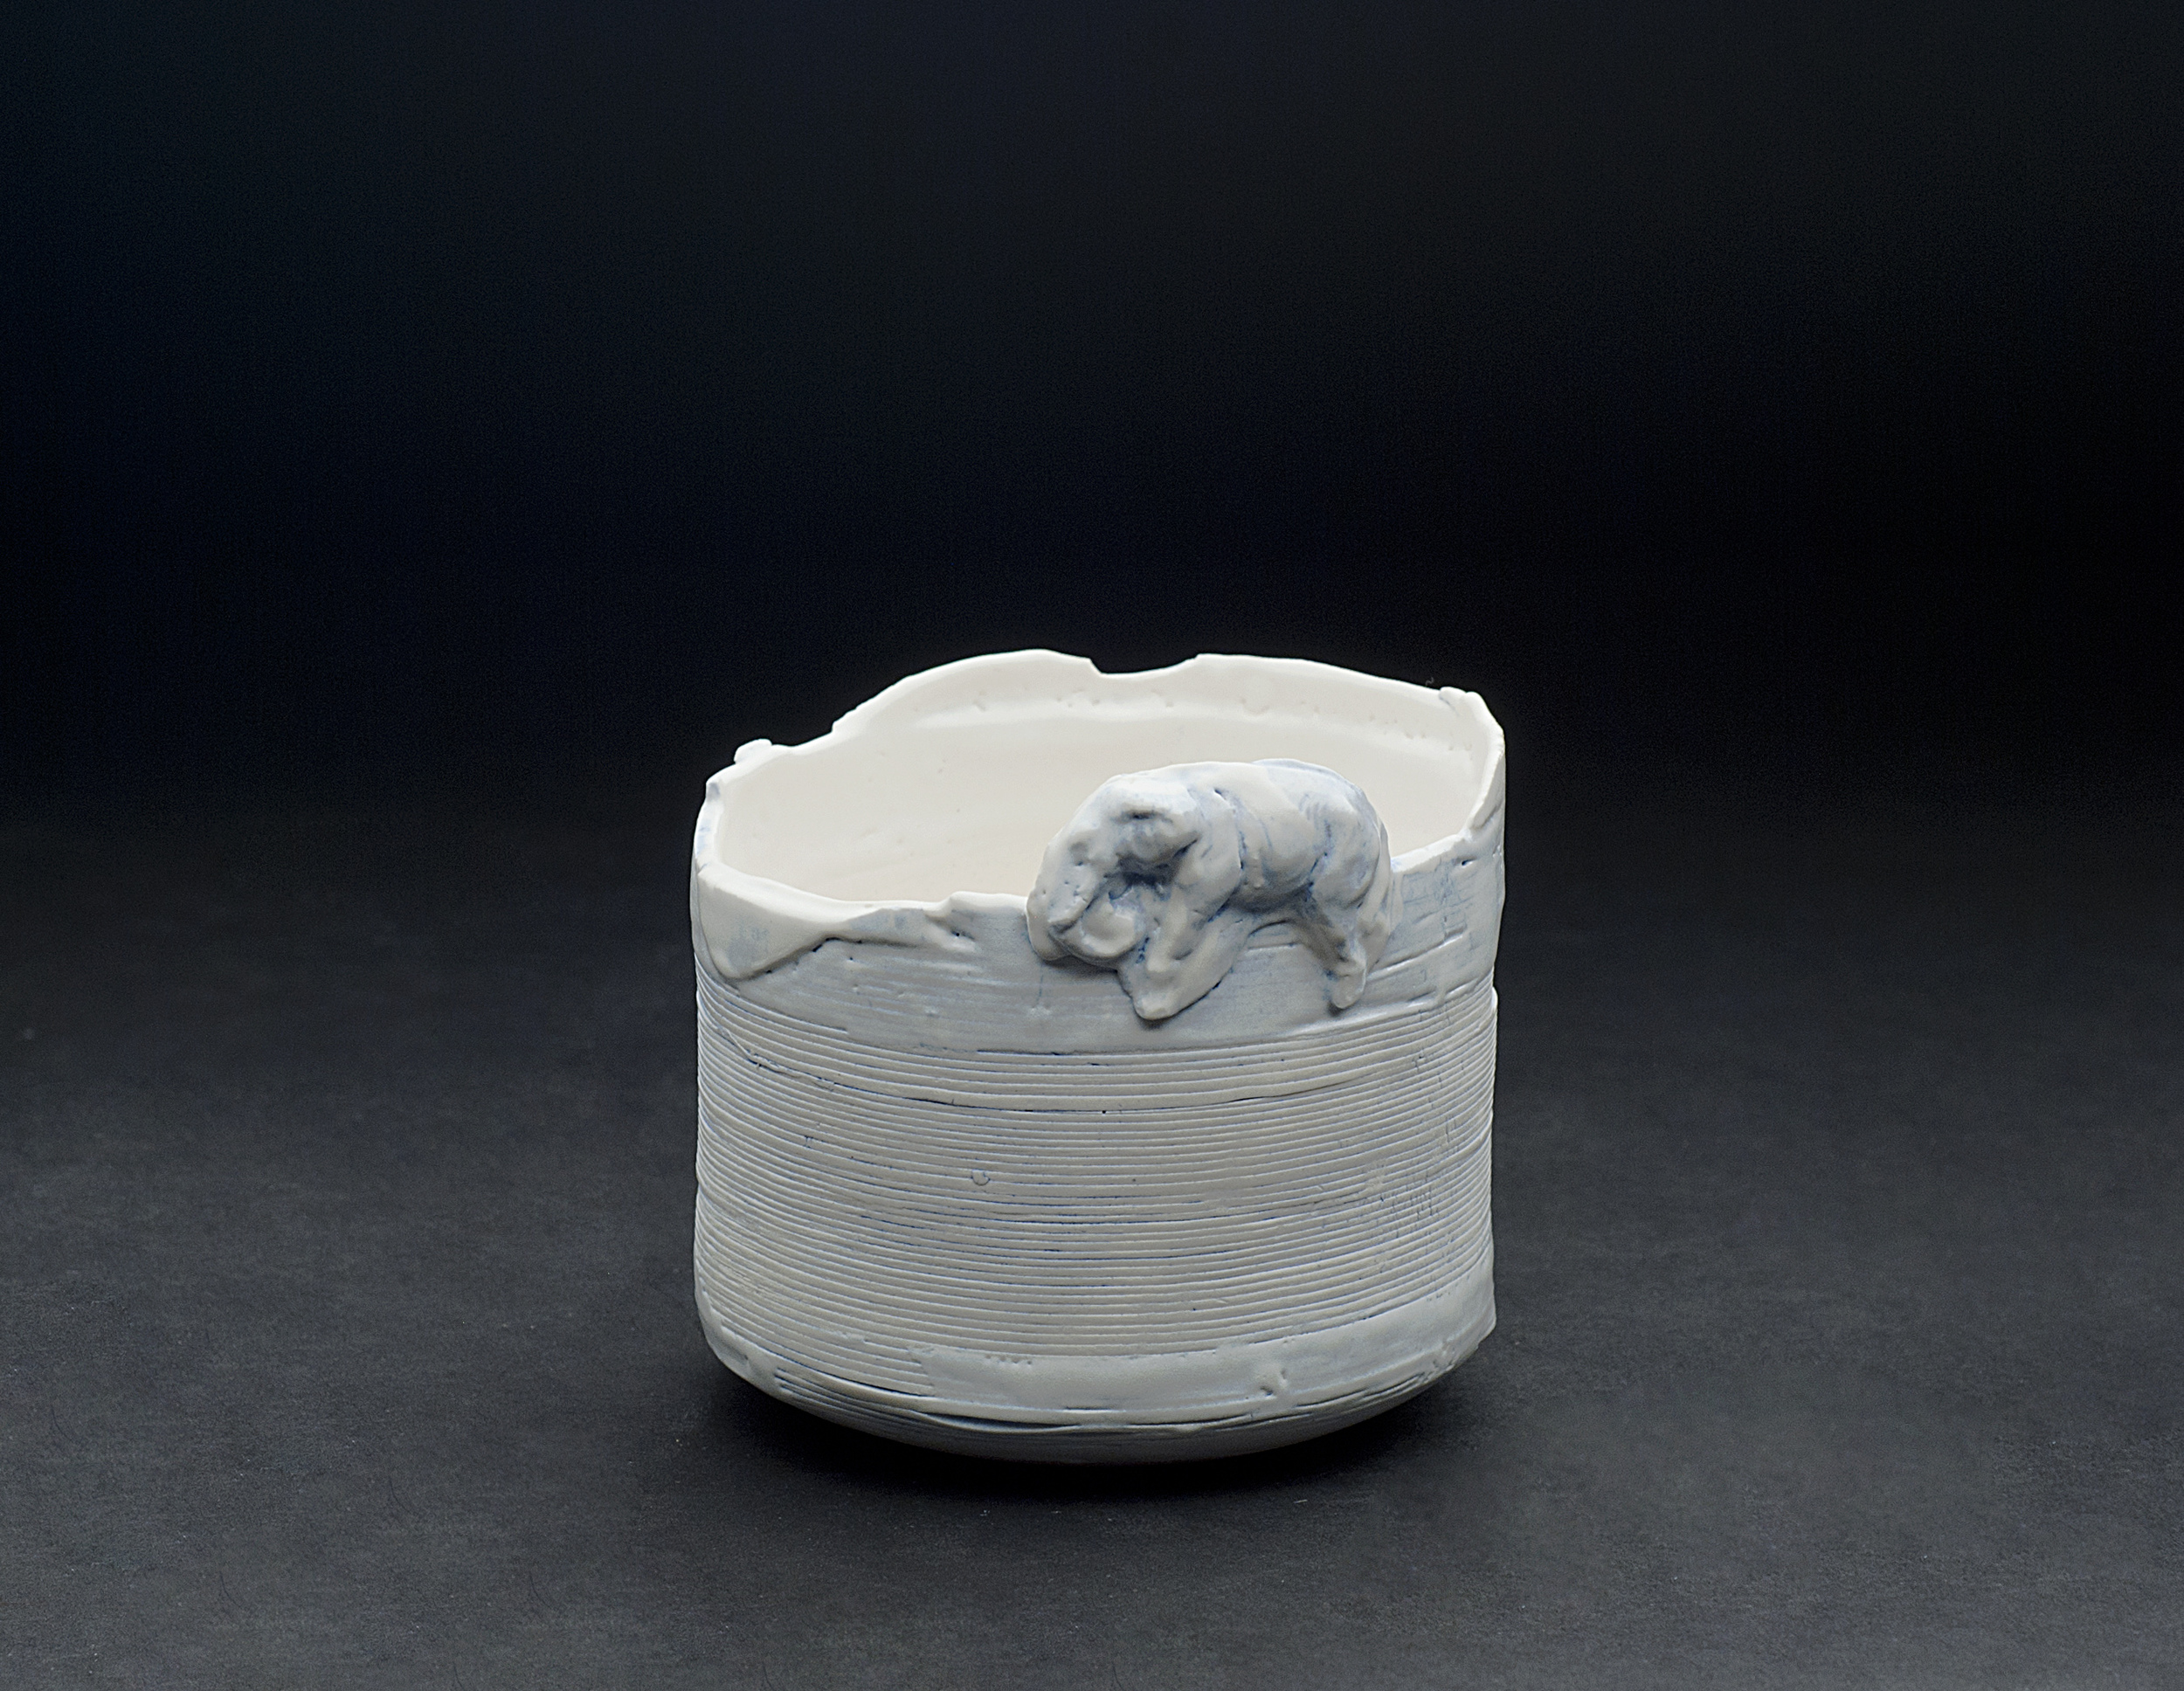 Hideo Matsumoto    Chawan (White & Blue) with Signed Box  , 2005 Porcelain 4 x 4 x 4 inches / 10.2 x 10.2 x 10.2 cm / HMA 3